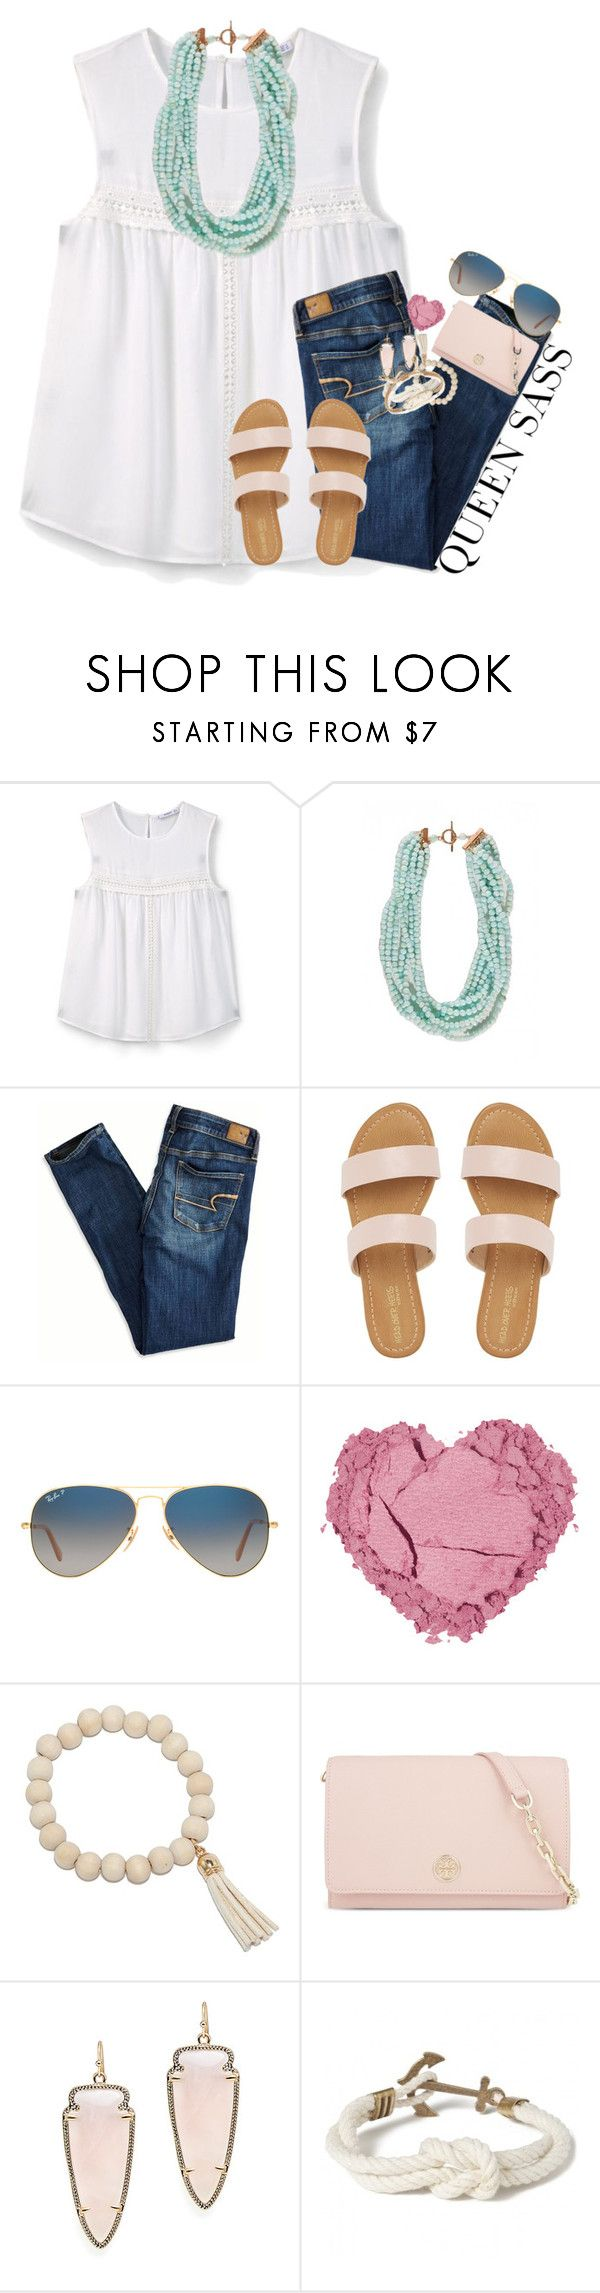 """when ur old, crappy sets are getting 150+ likes but ur newer, better ones can't get past 60"" by kate-elizabethh ❤ liked on Polyvore featuring MANGO, American Eagle Outfitters, Ray-Ban, Tory Burch, Kendra Scott and Kiel James Patrick"